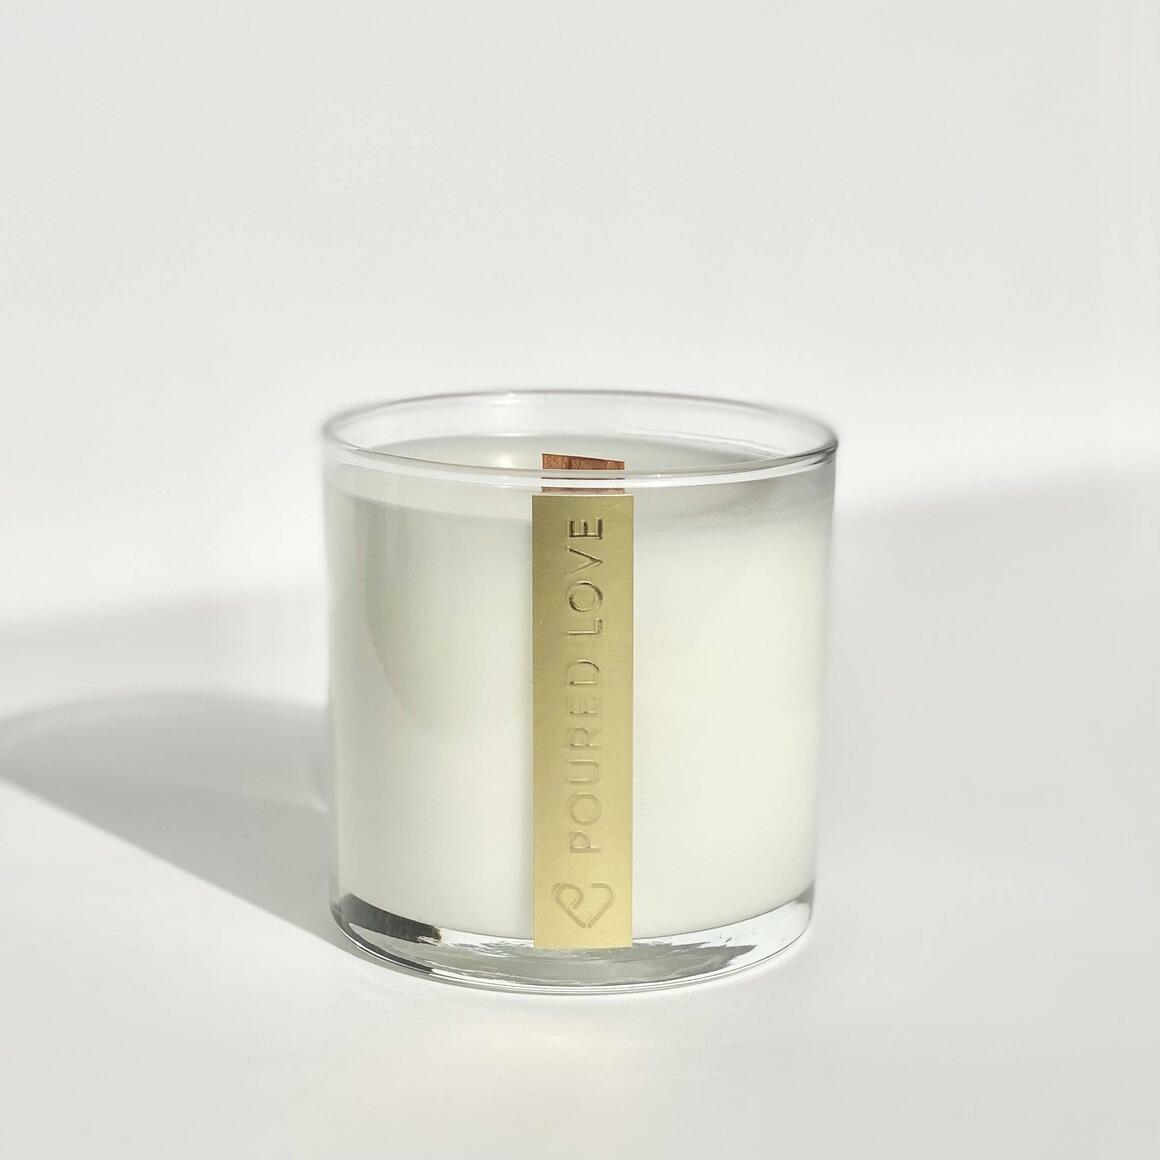 Woody Florals- Scented Candle | Trada Marketplace